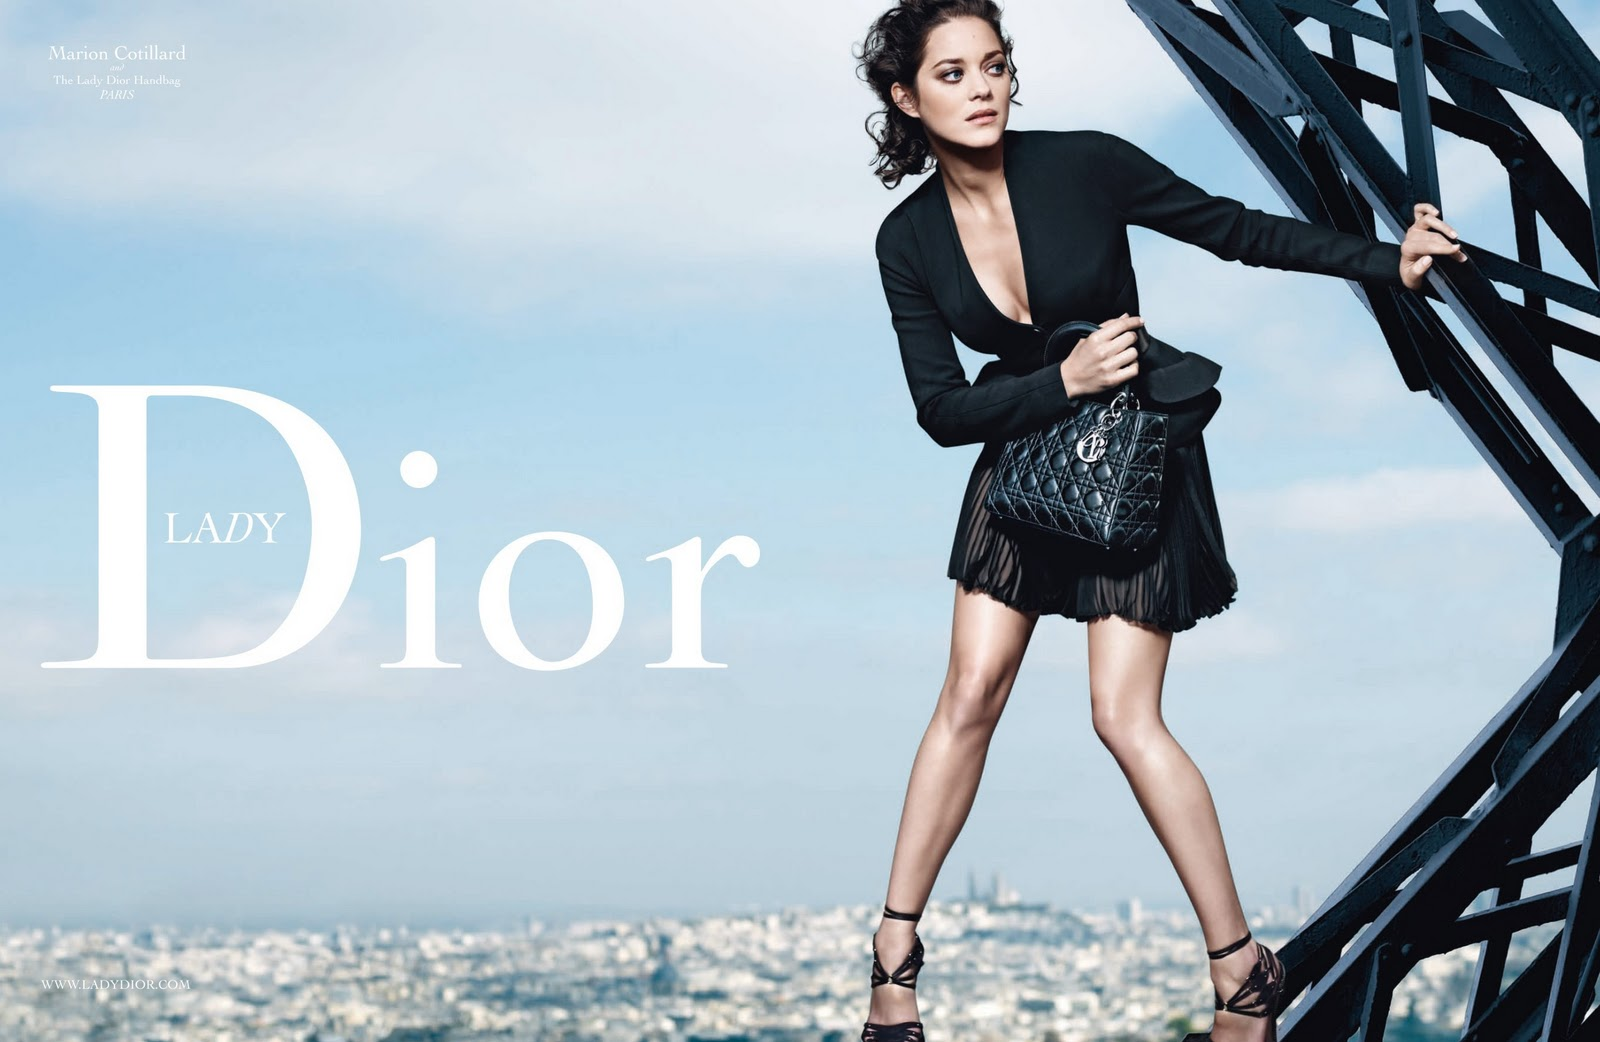 Fashion Squared: Lady Dior with Marion Cotillard